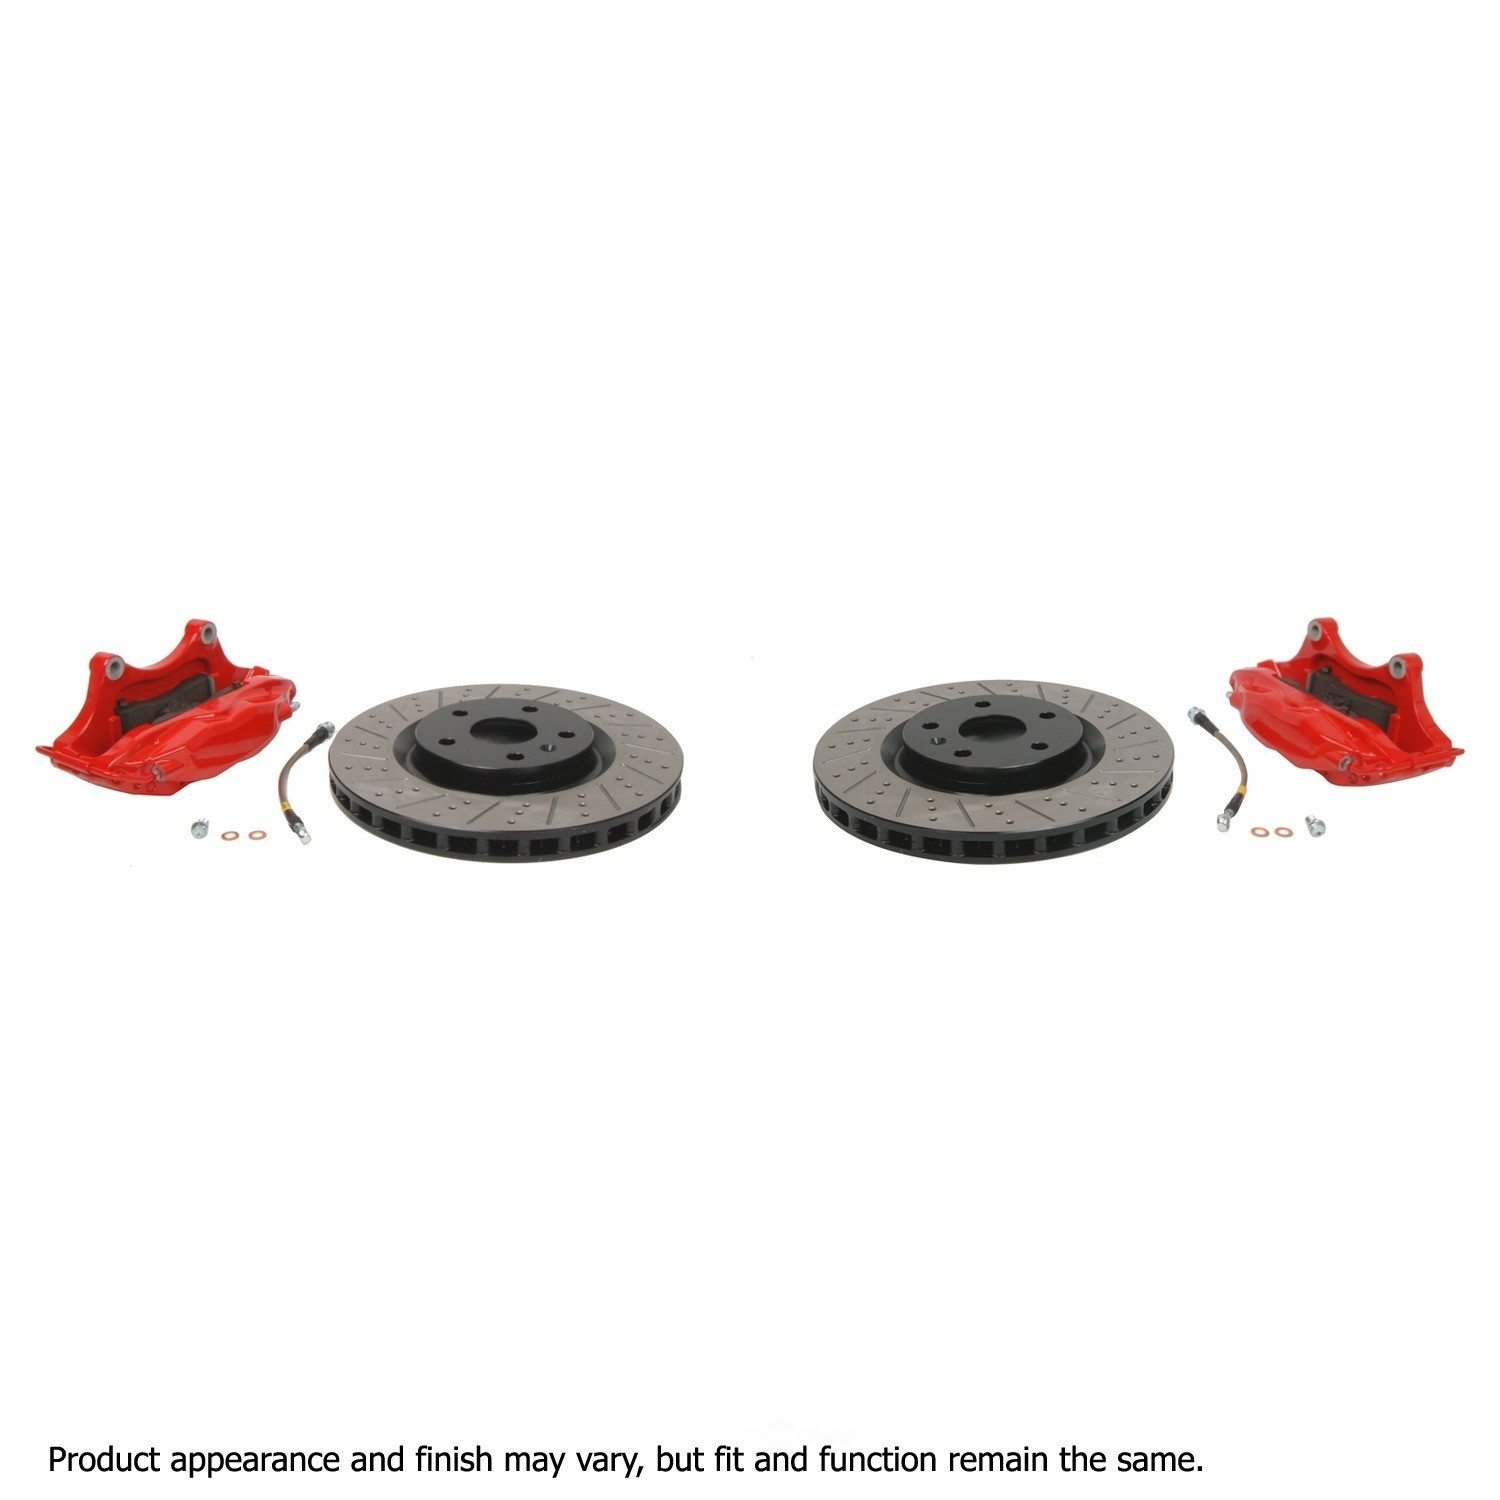 CARDONE/A-1 CARDONE - Reman Performance Brake Upgrade Kit (Front) - A1C 2B-9040XR